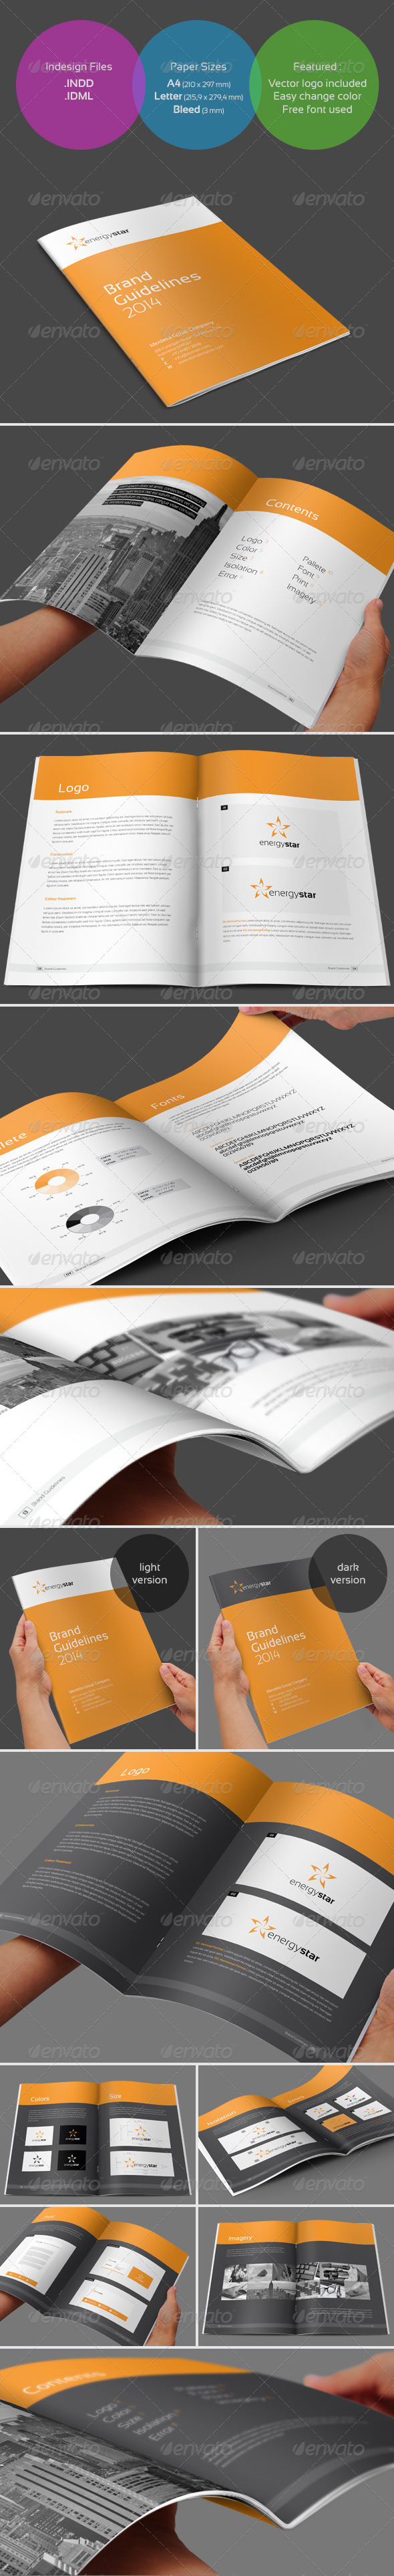 GraphicRiver Brand Guidelines 6453390